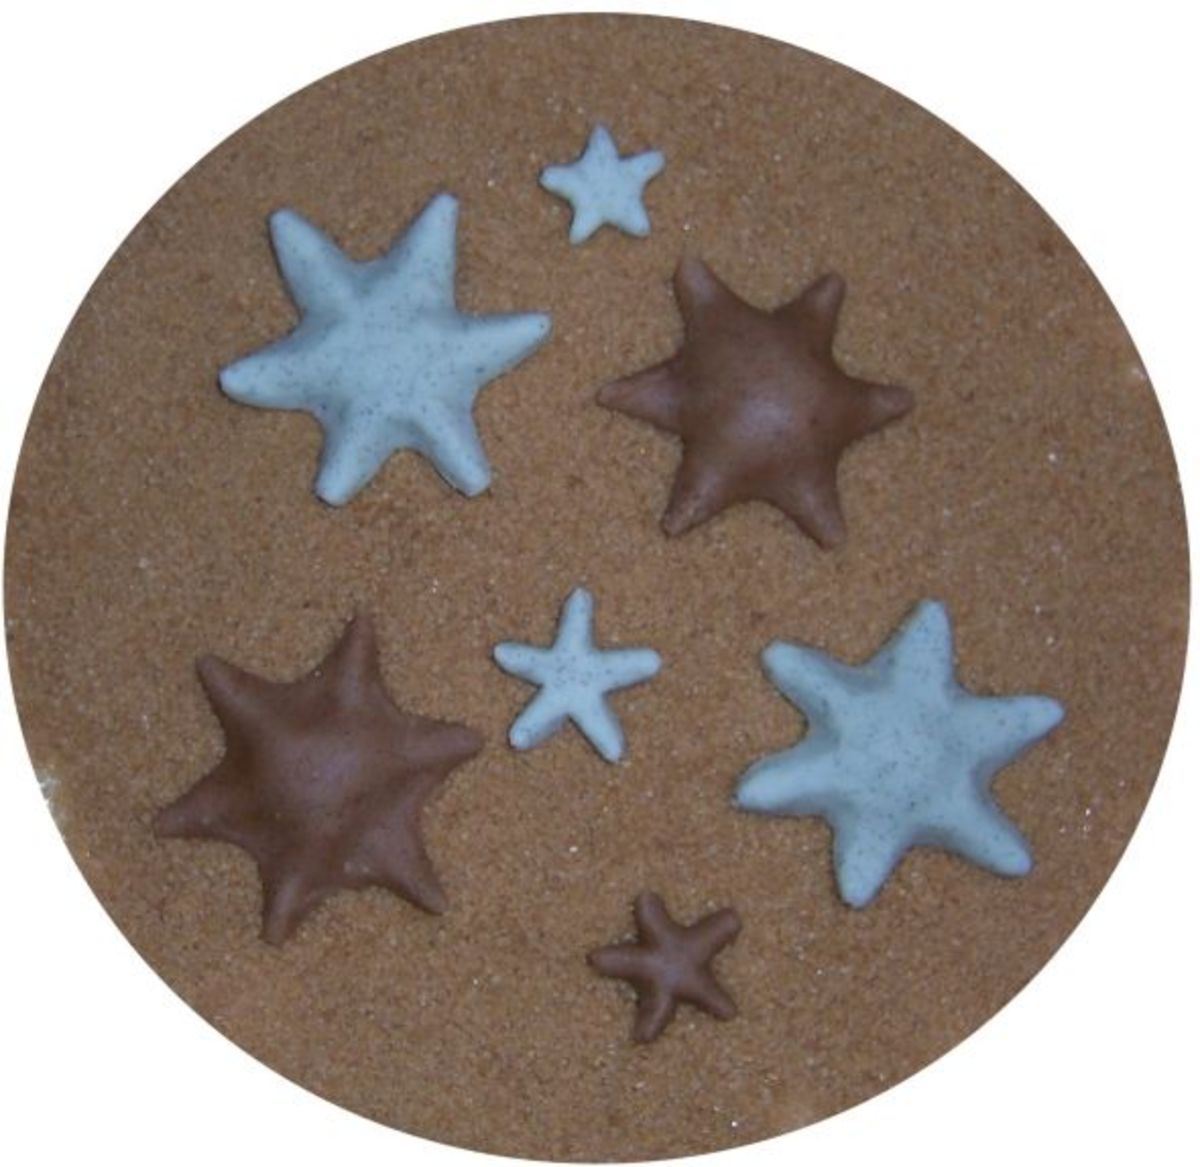 Asterina starfish made of fondant